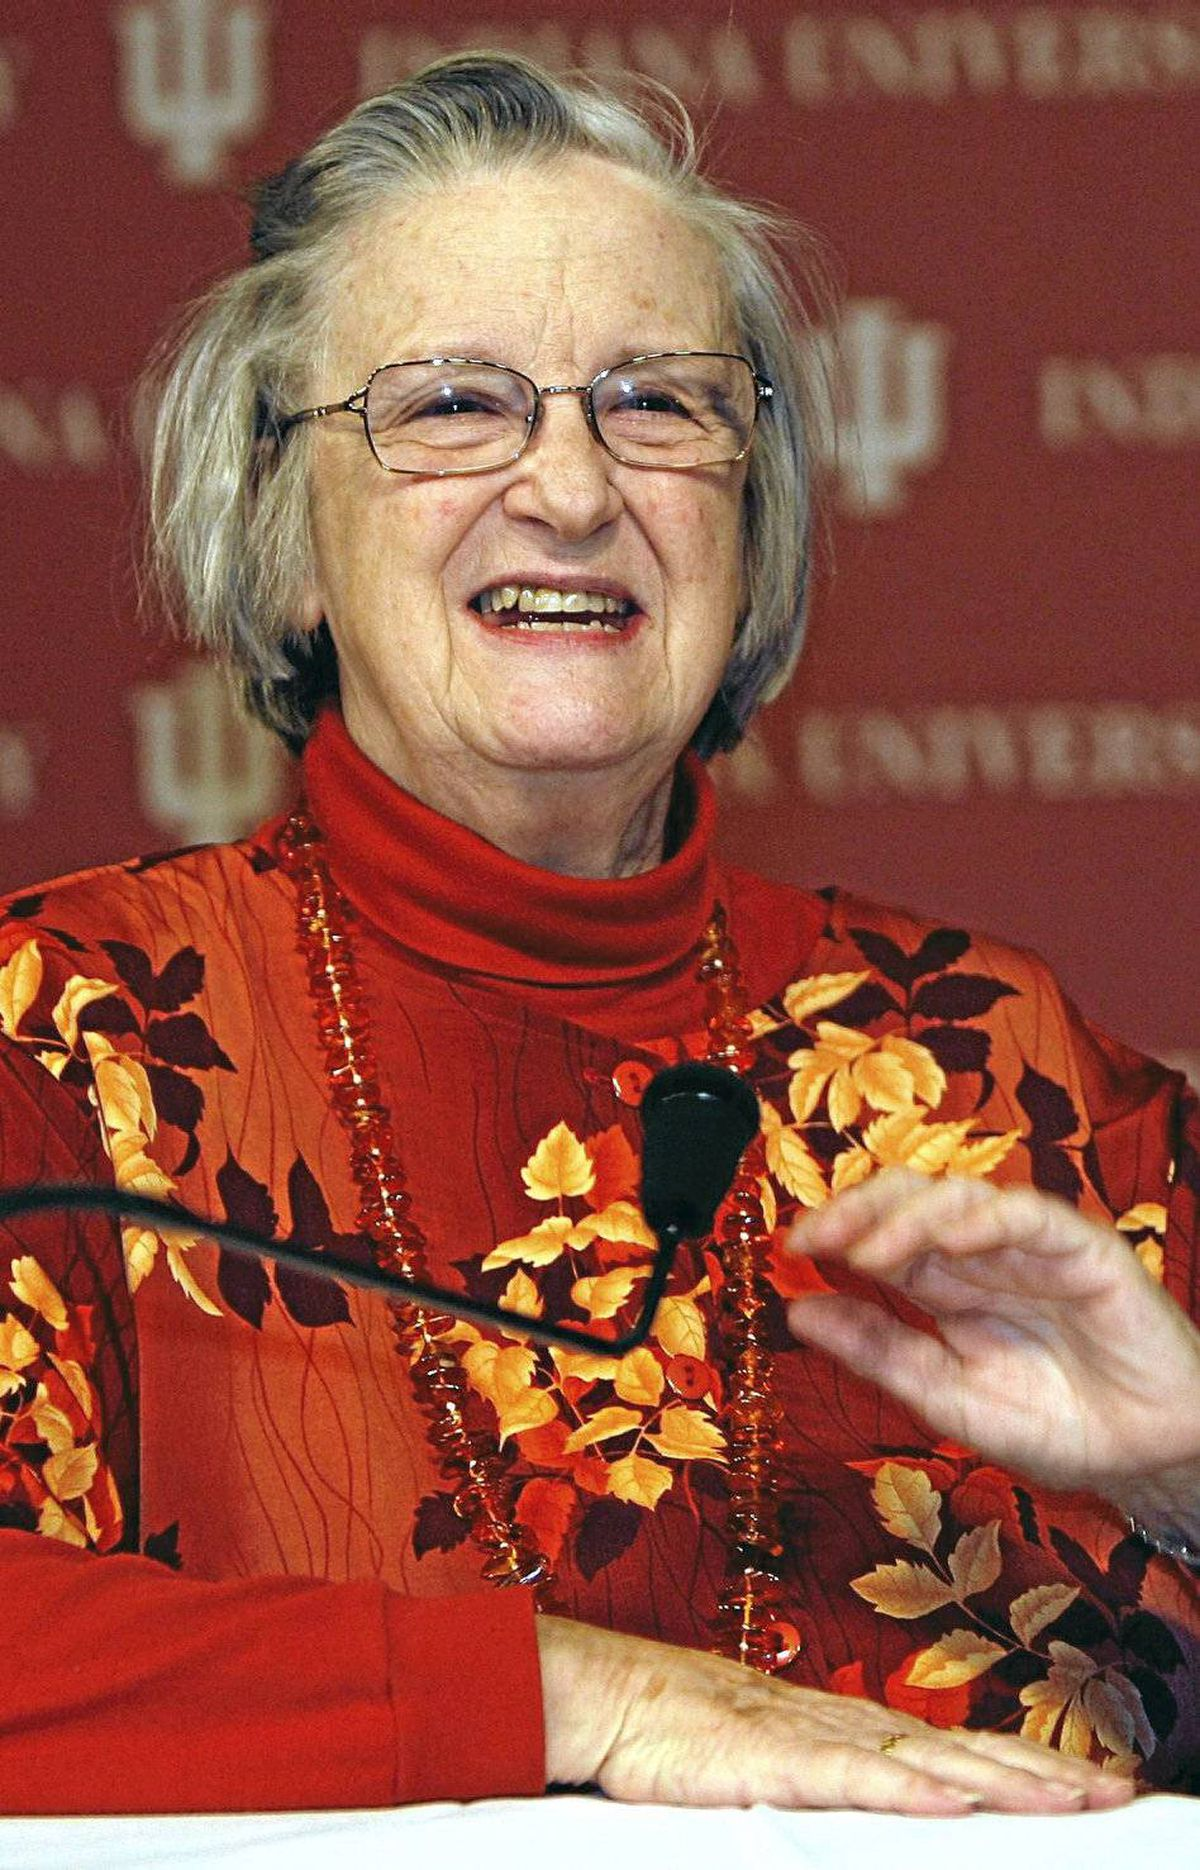 Elinor Ostrom First woman to win the Nobel Prize in economics, in 2009, in its 40-year history for her work on the commons. She is a political scientist rather than economist, though, which means a woman economist has yet to win the economics Nobel Prize.